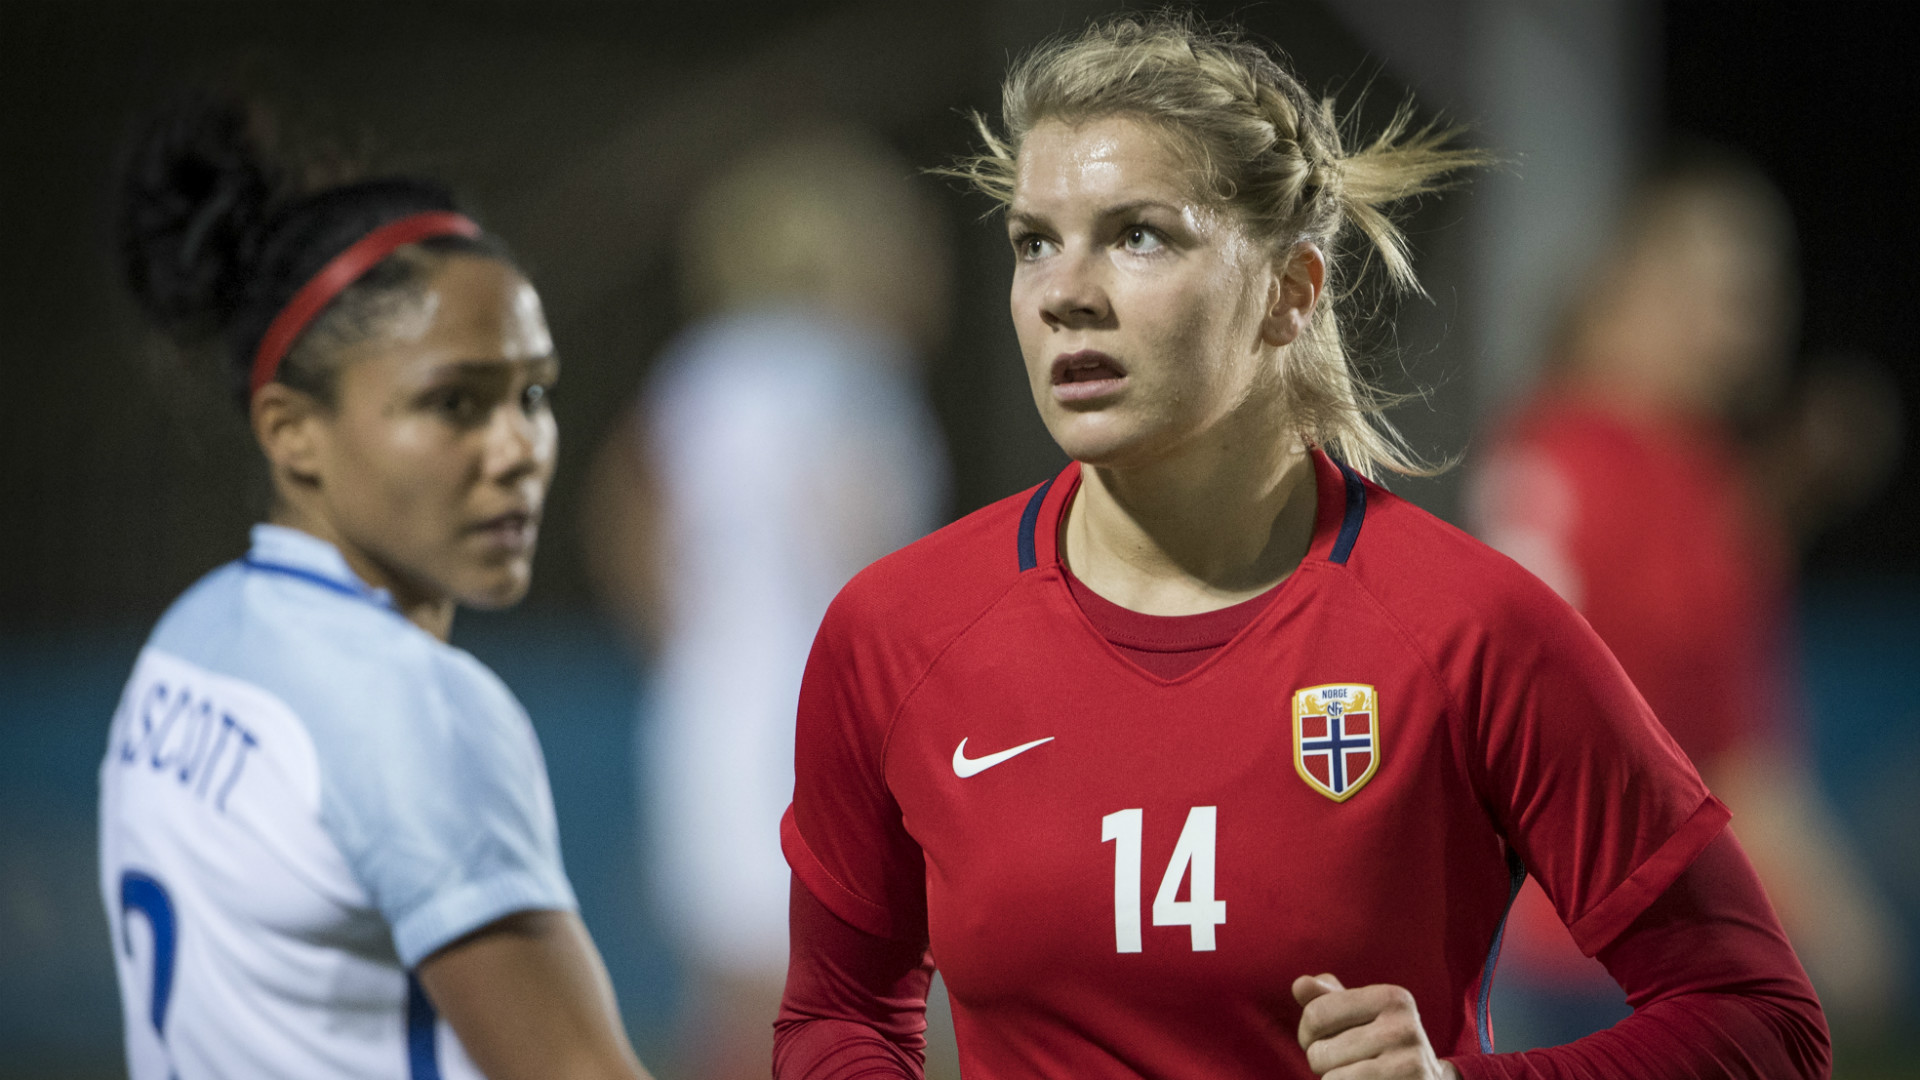 Ada Hegerberg Norway